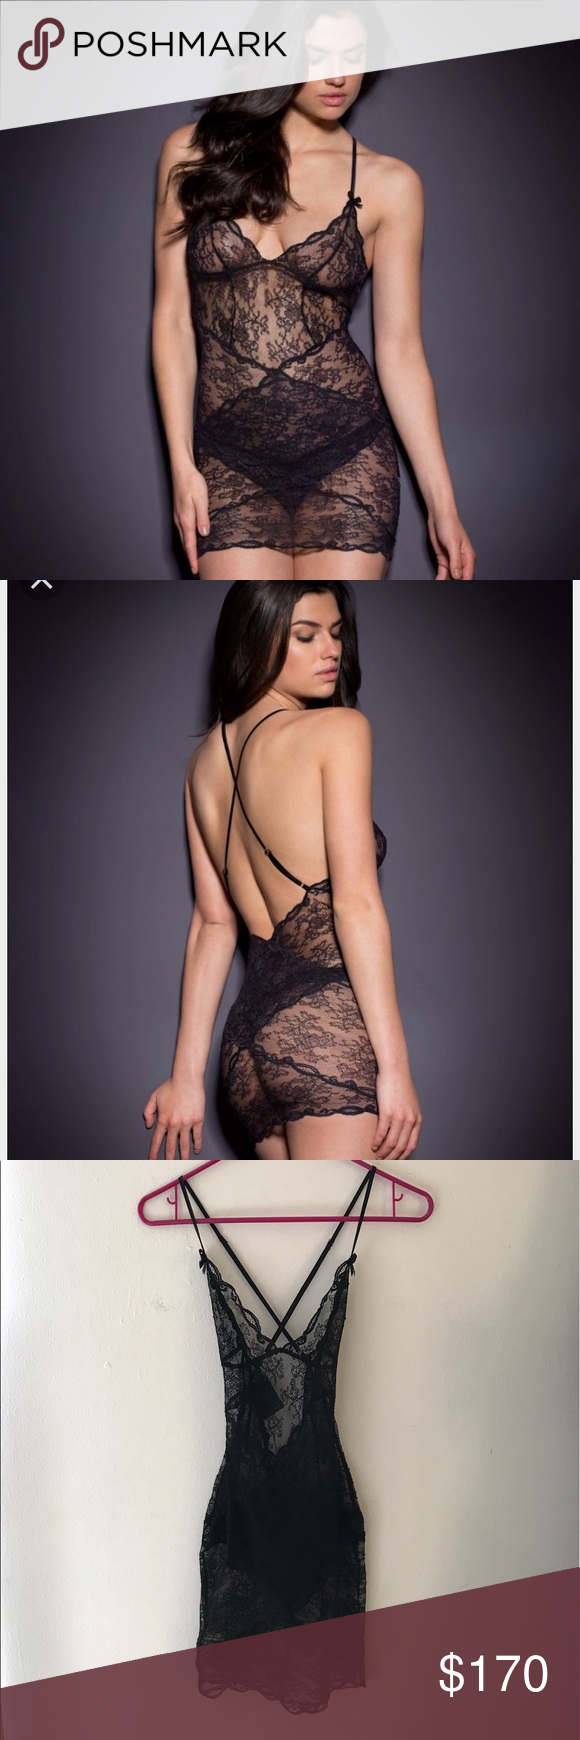 a8b8915836 NWT - Agent Provocateur Love slip in black Agent Provocateur s bestselling  Love range has been updated